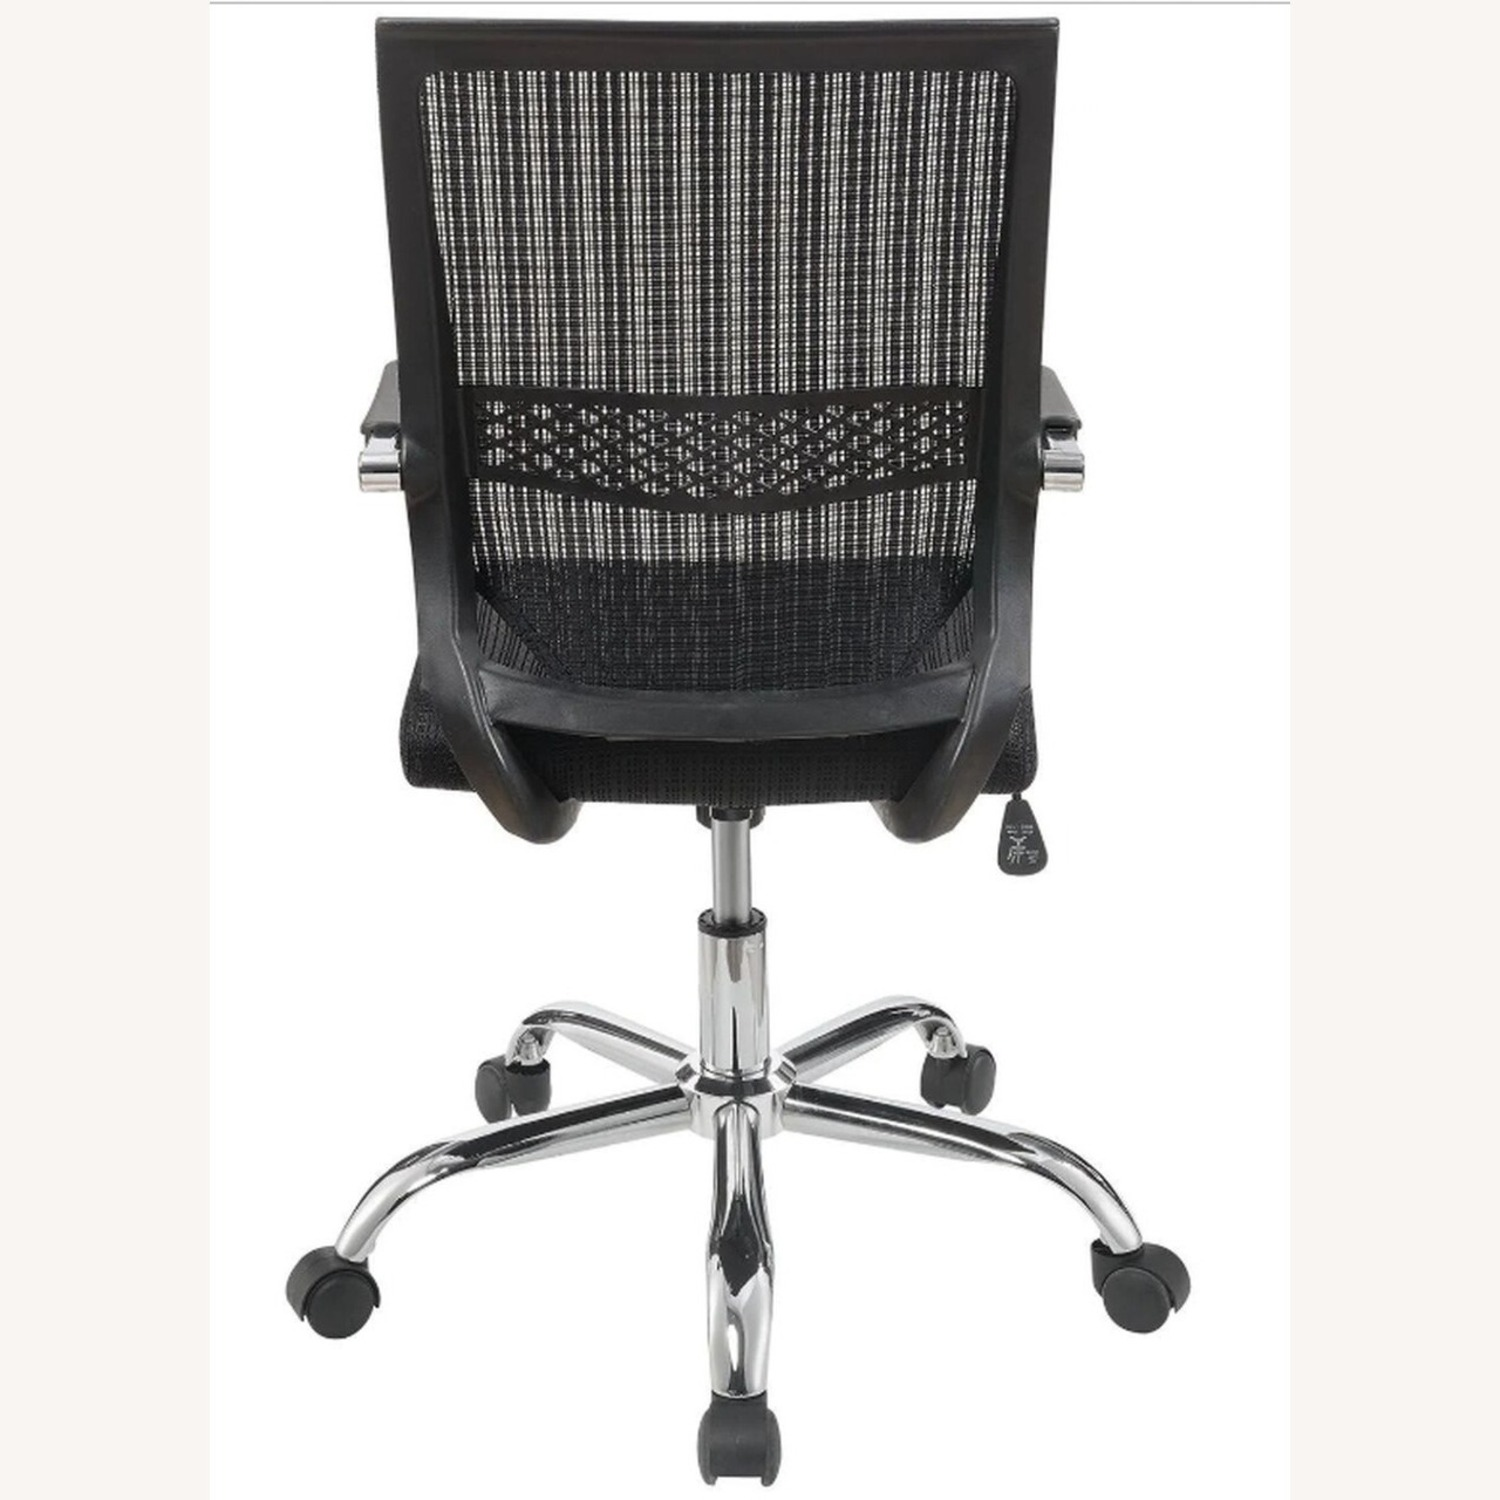 Office Chair In Black Fabric Finish W/ Mesh Back - image-2